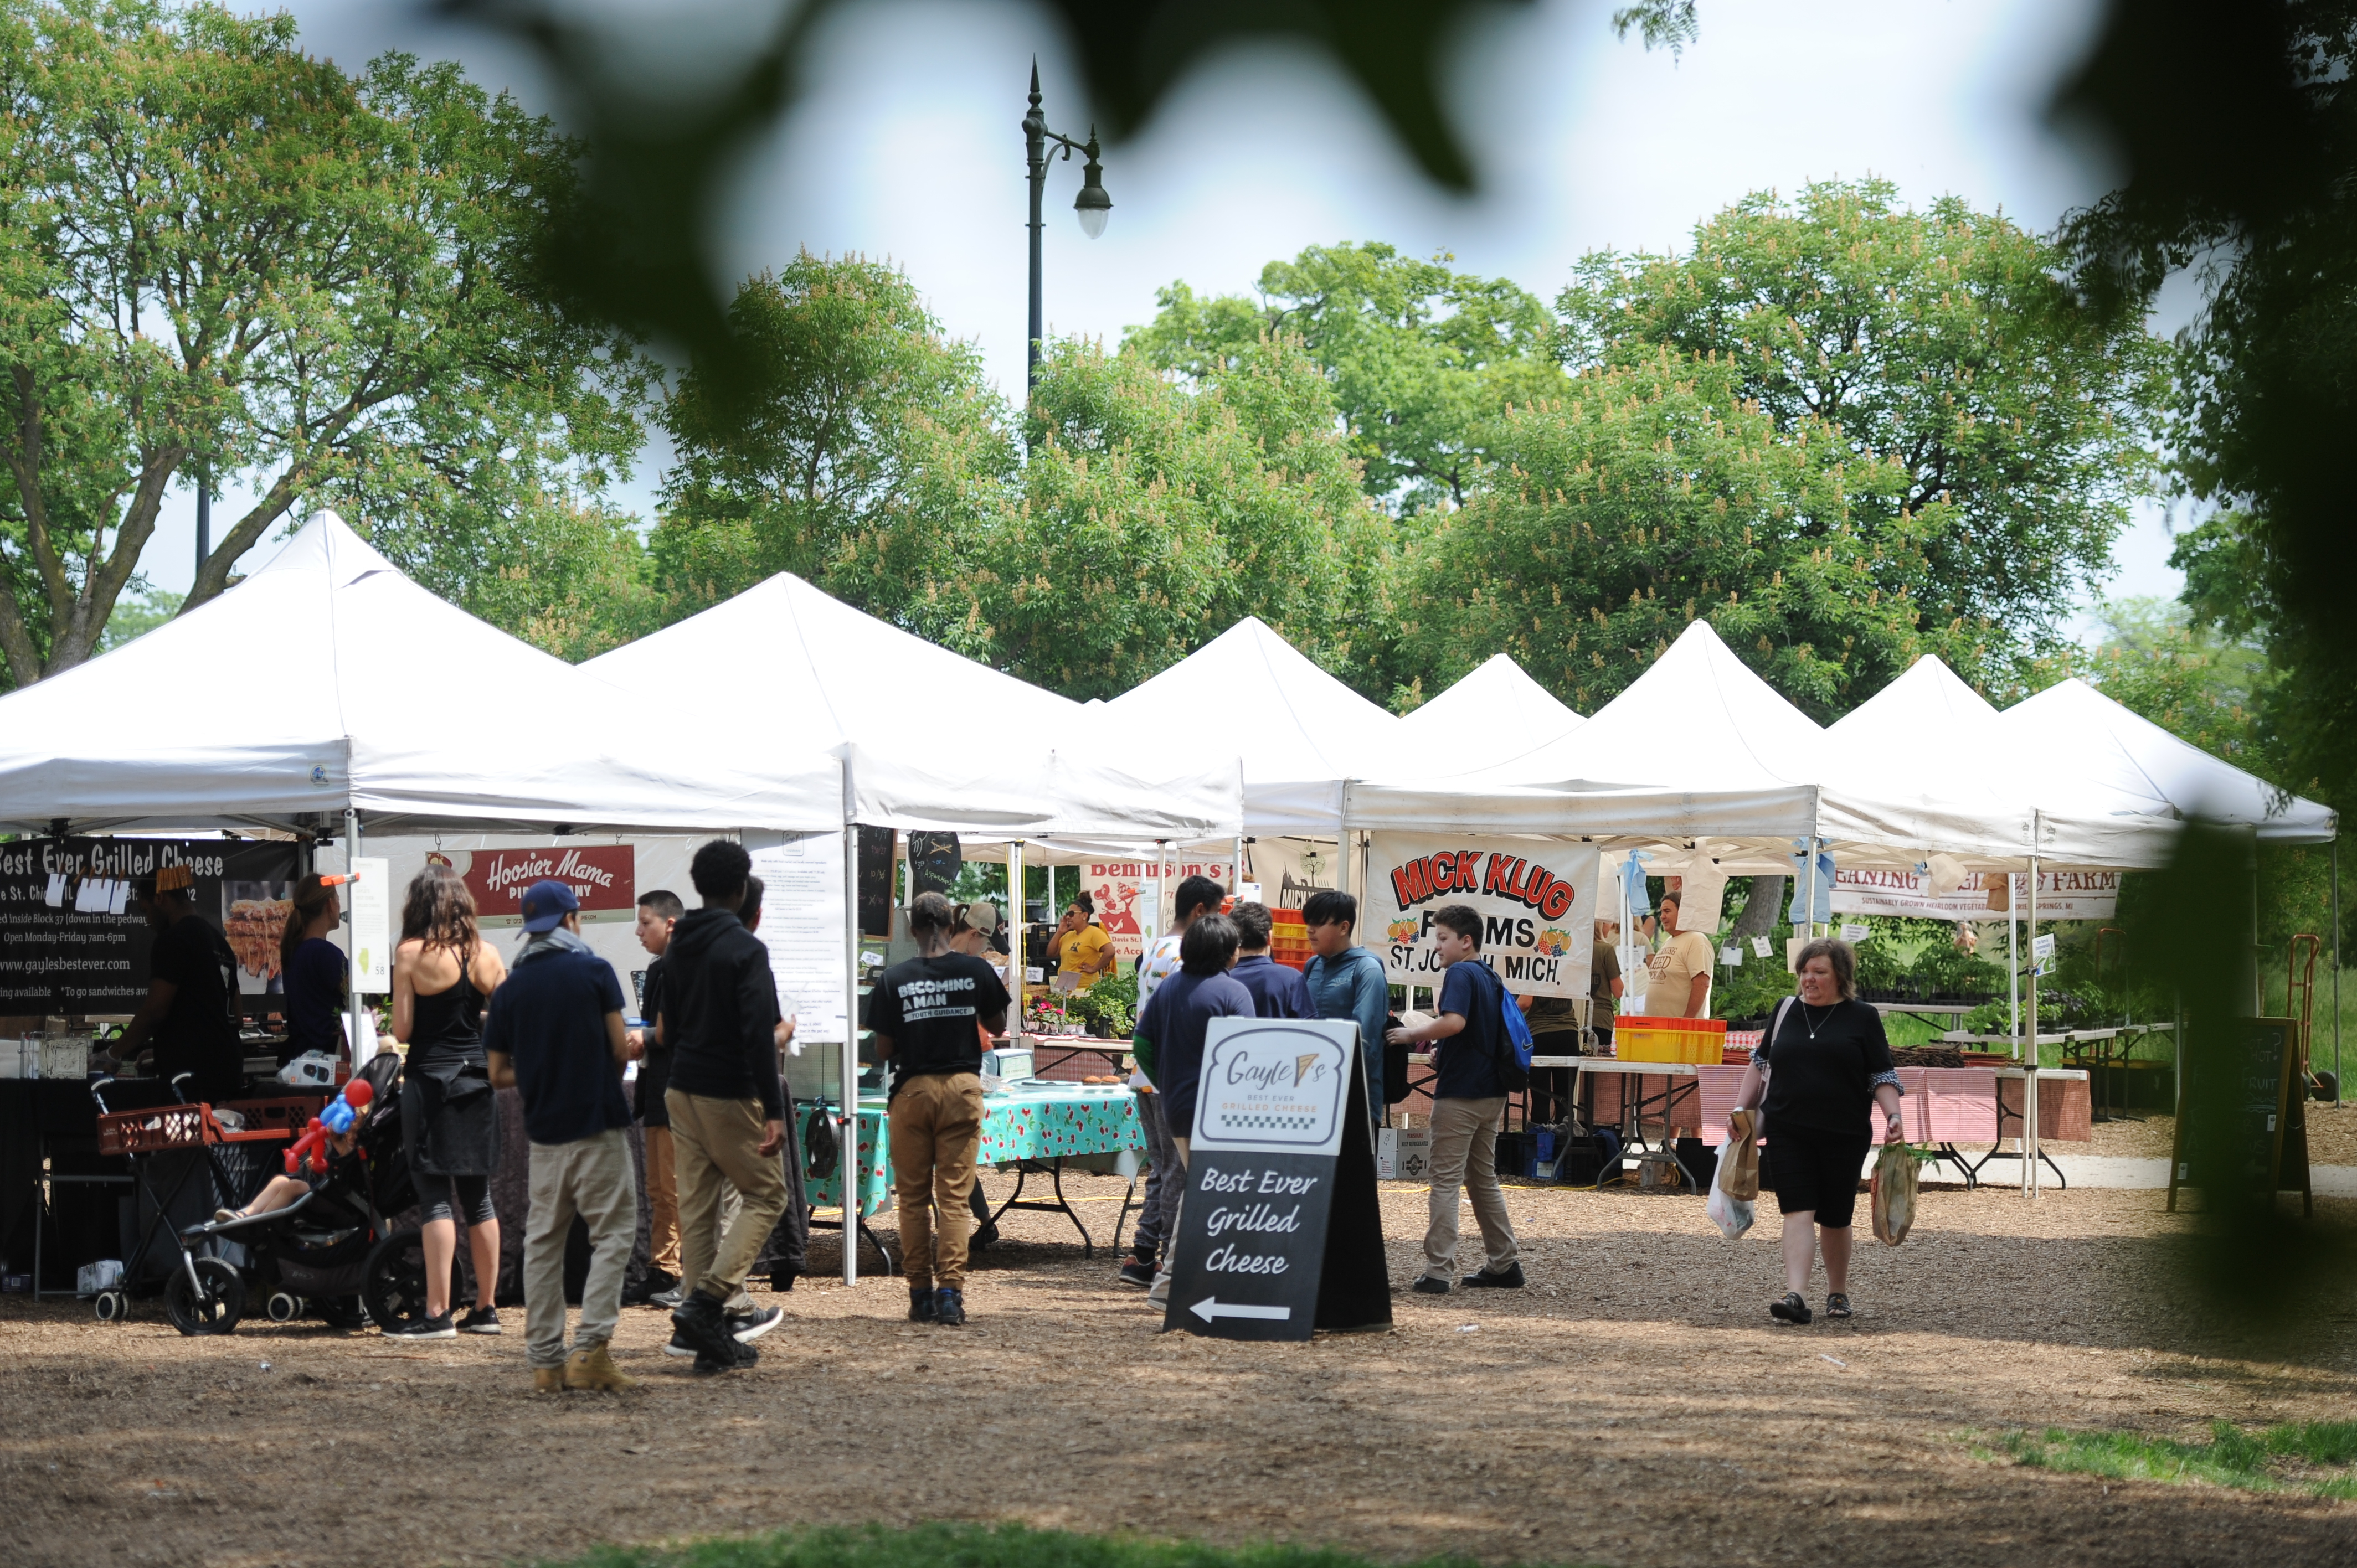 Chicago's largest farmers market, Green City Market located in Lincoln Park, provides a marketplace for purchasing variety of produce.